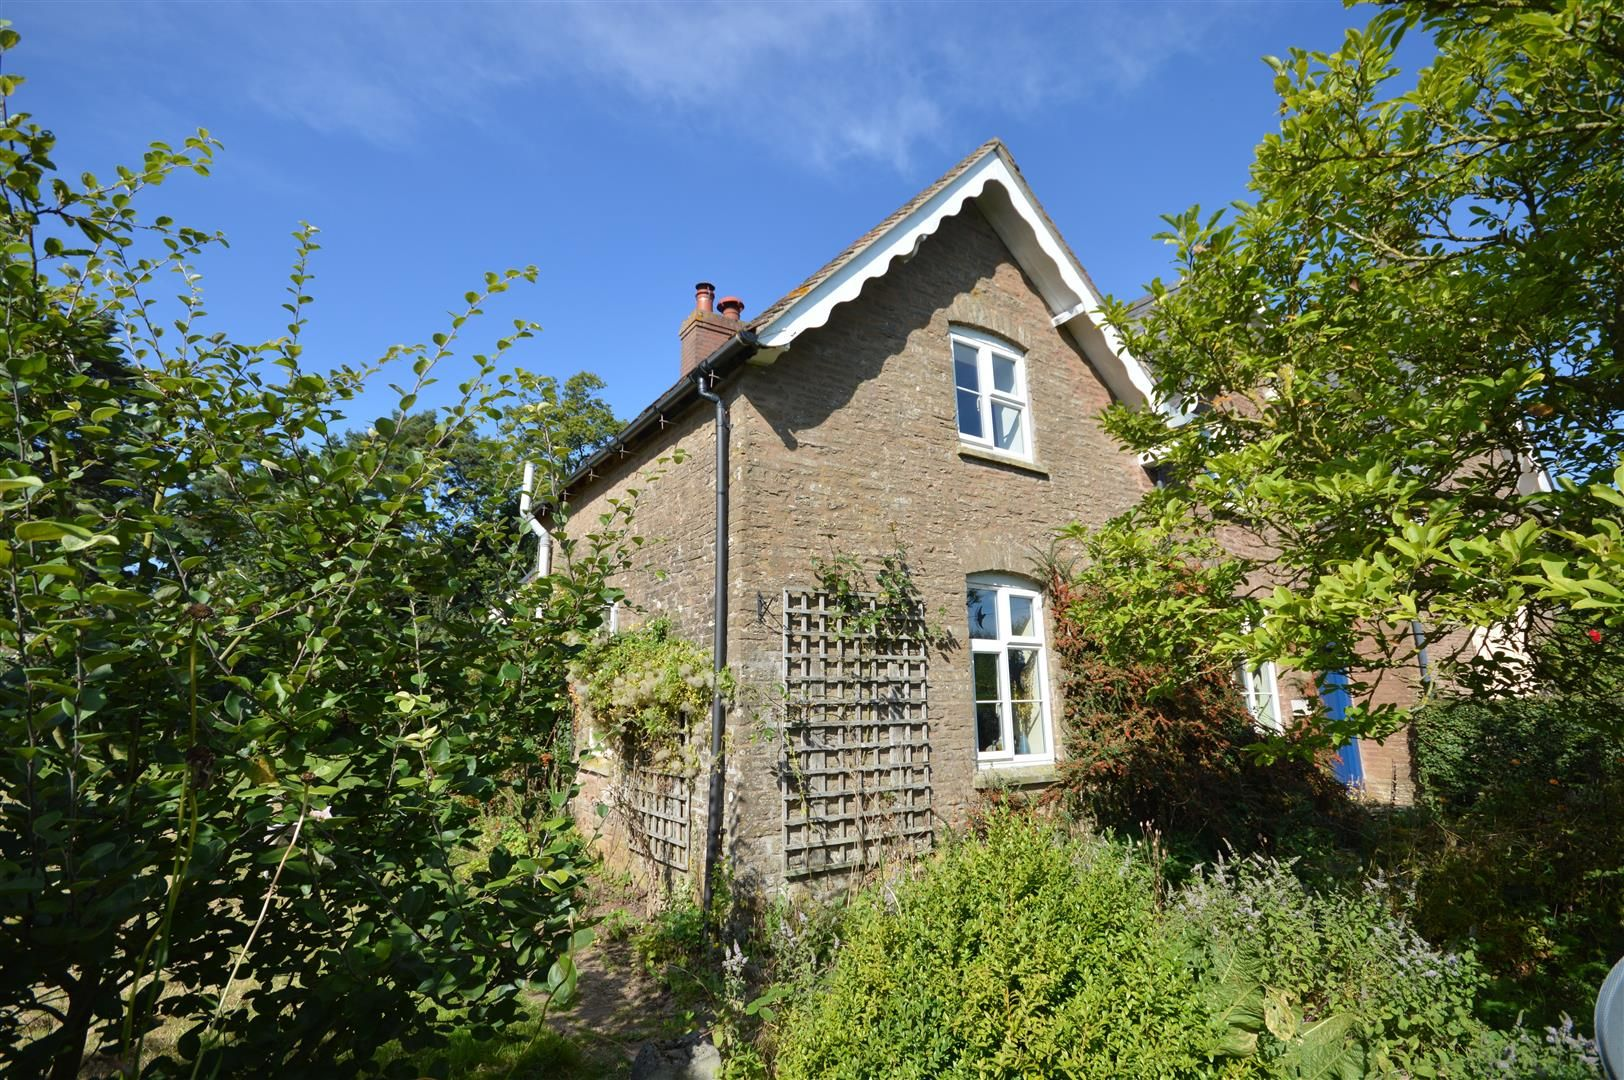 3 bed semi-detached for sale in Hatfield, HR6